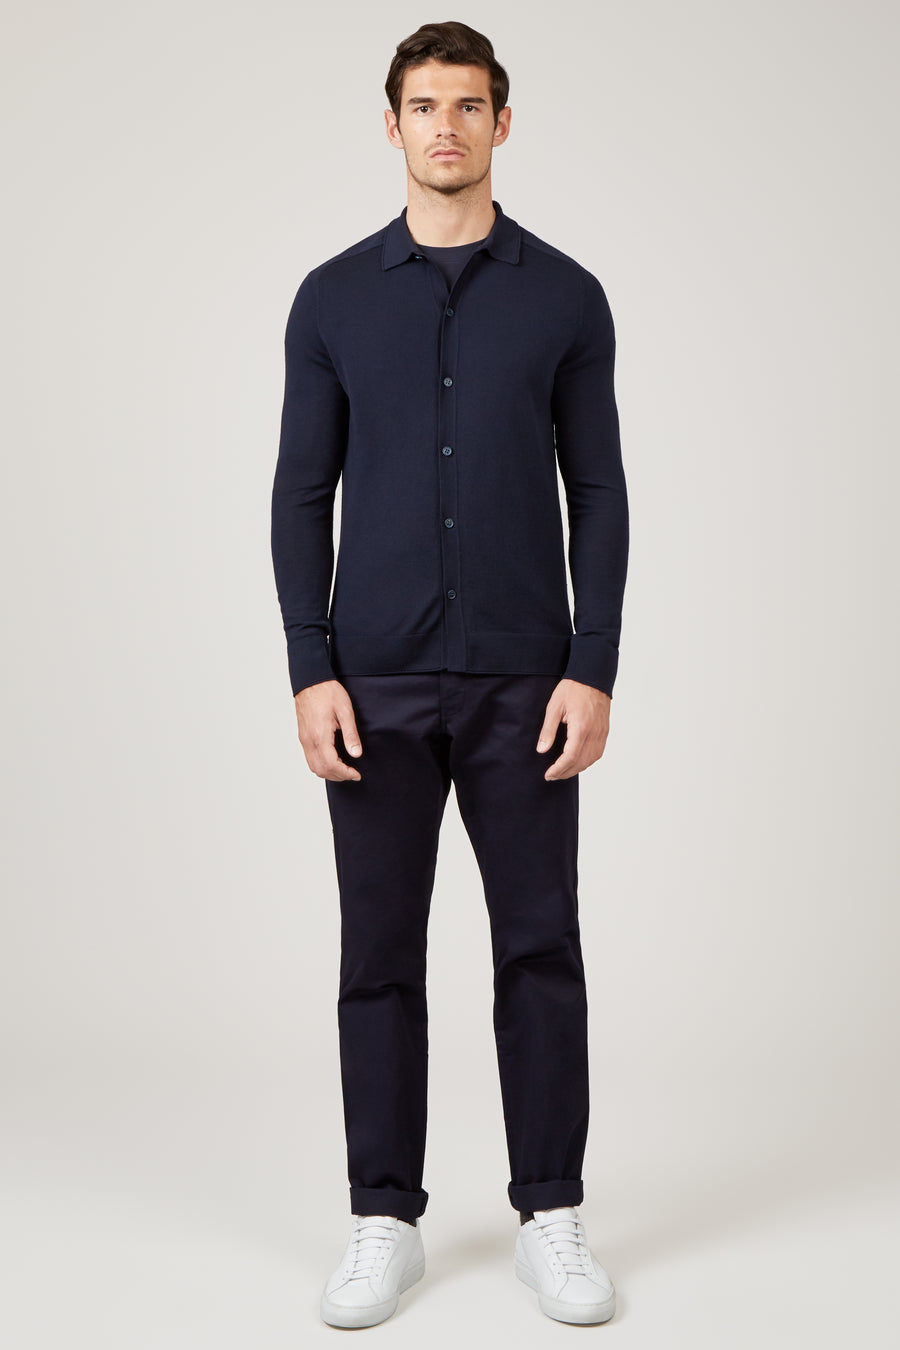 Navy Oliver Knit Shirt